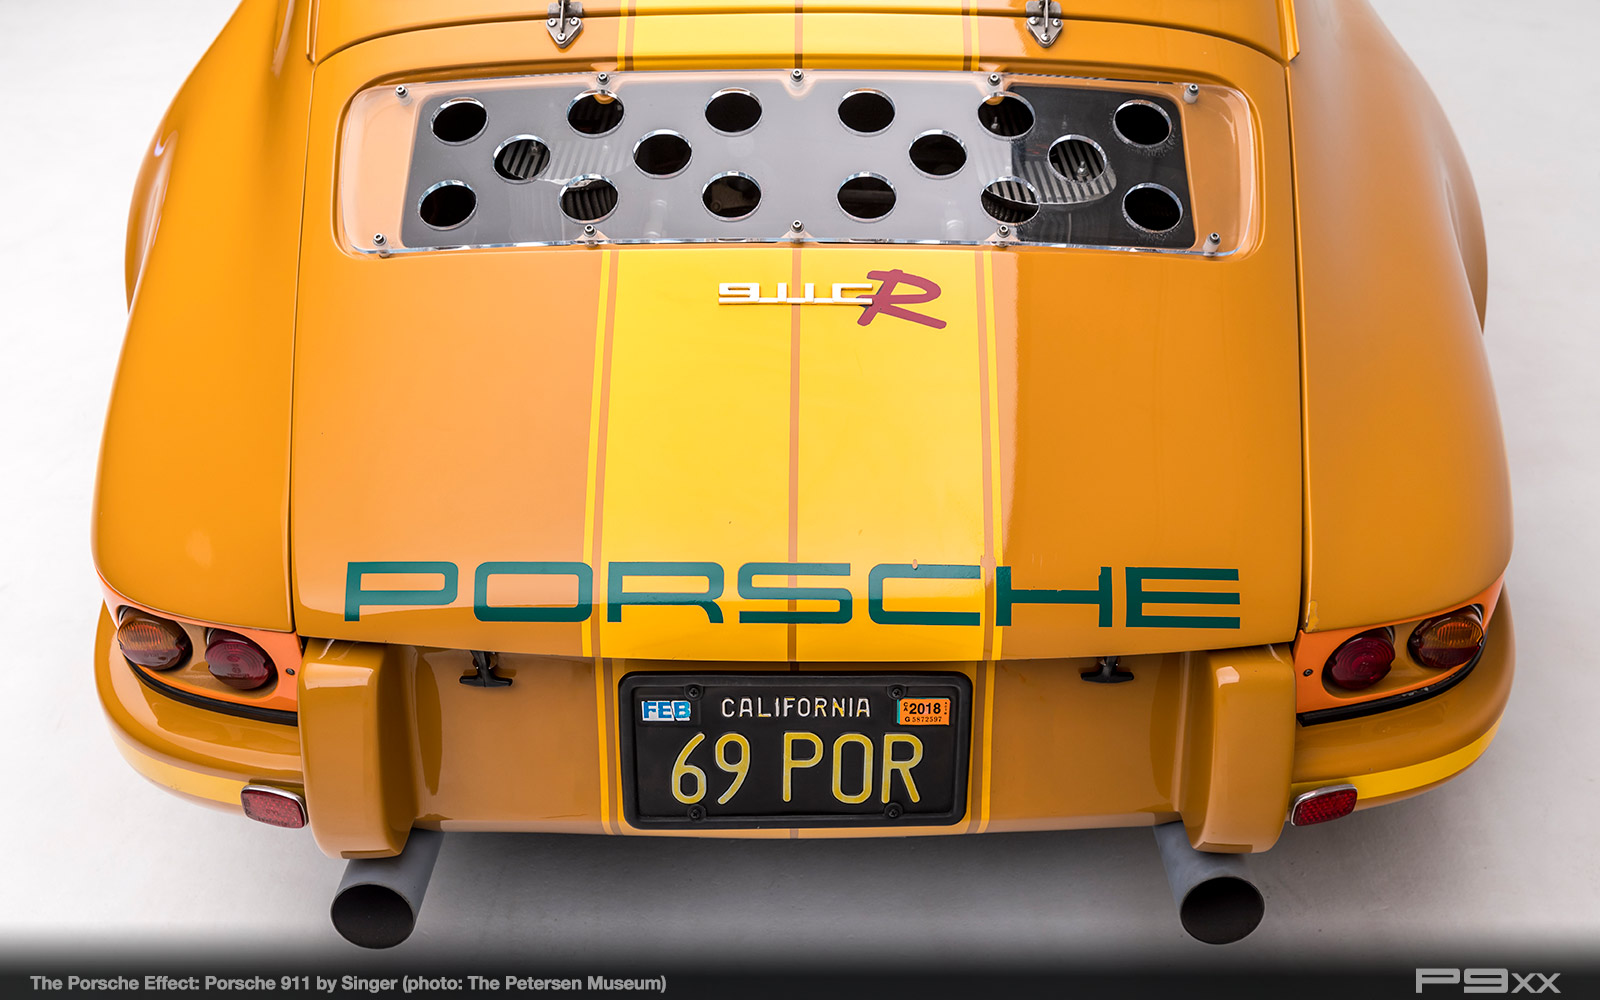 Singer-911-Petersen-Automotive-Museum-The-Porsche-Effect-292